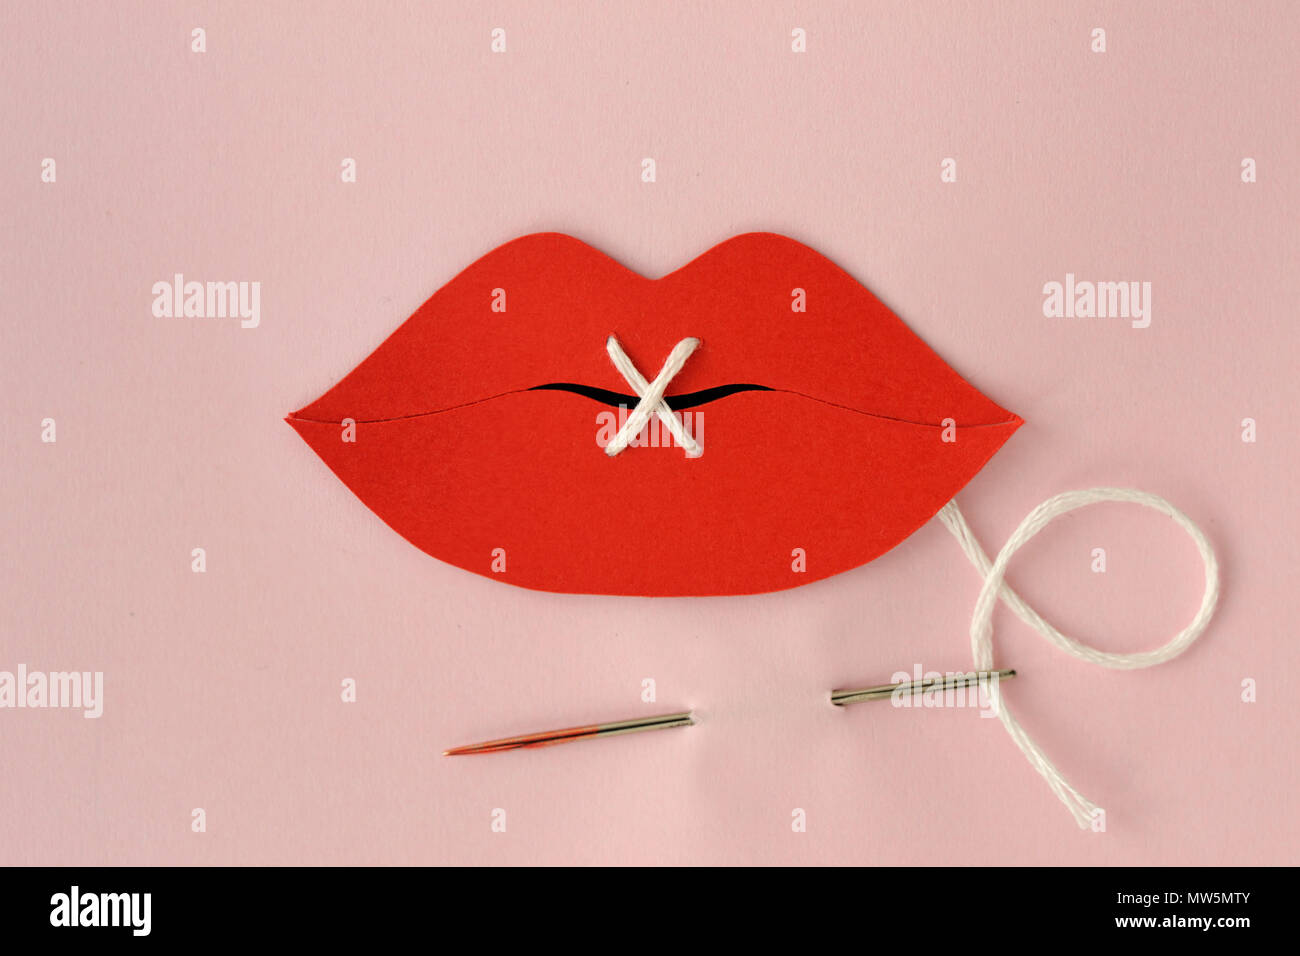 Paper lips cut-out sewn with white thread - Violence against women concept - Stock Image